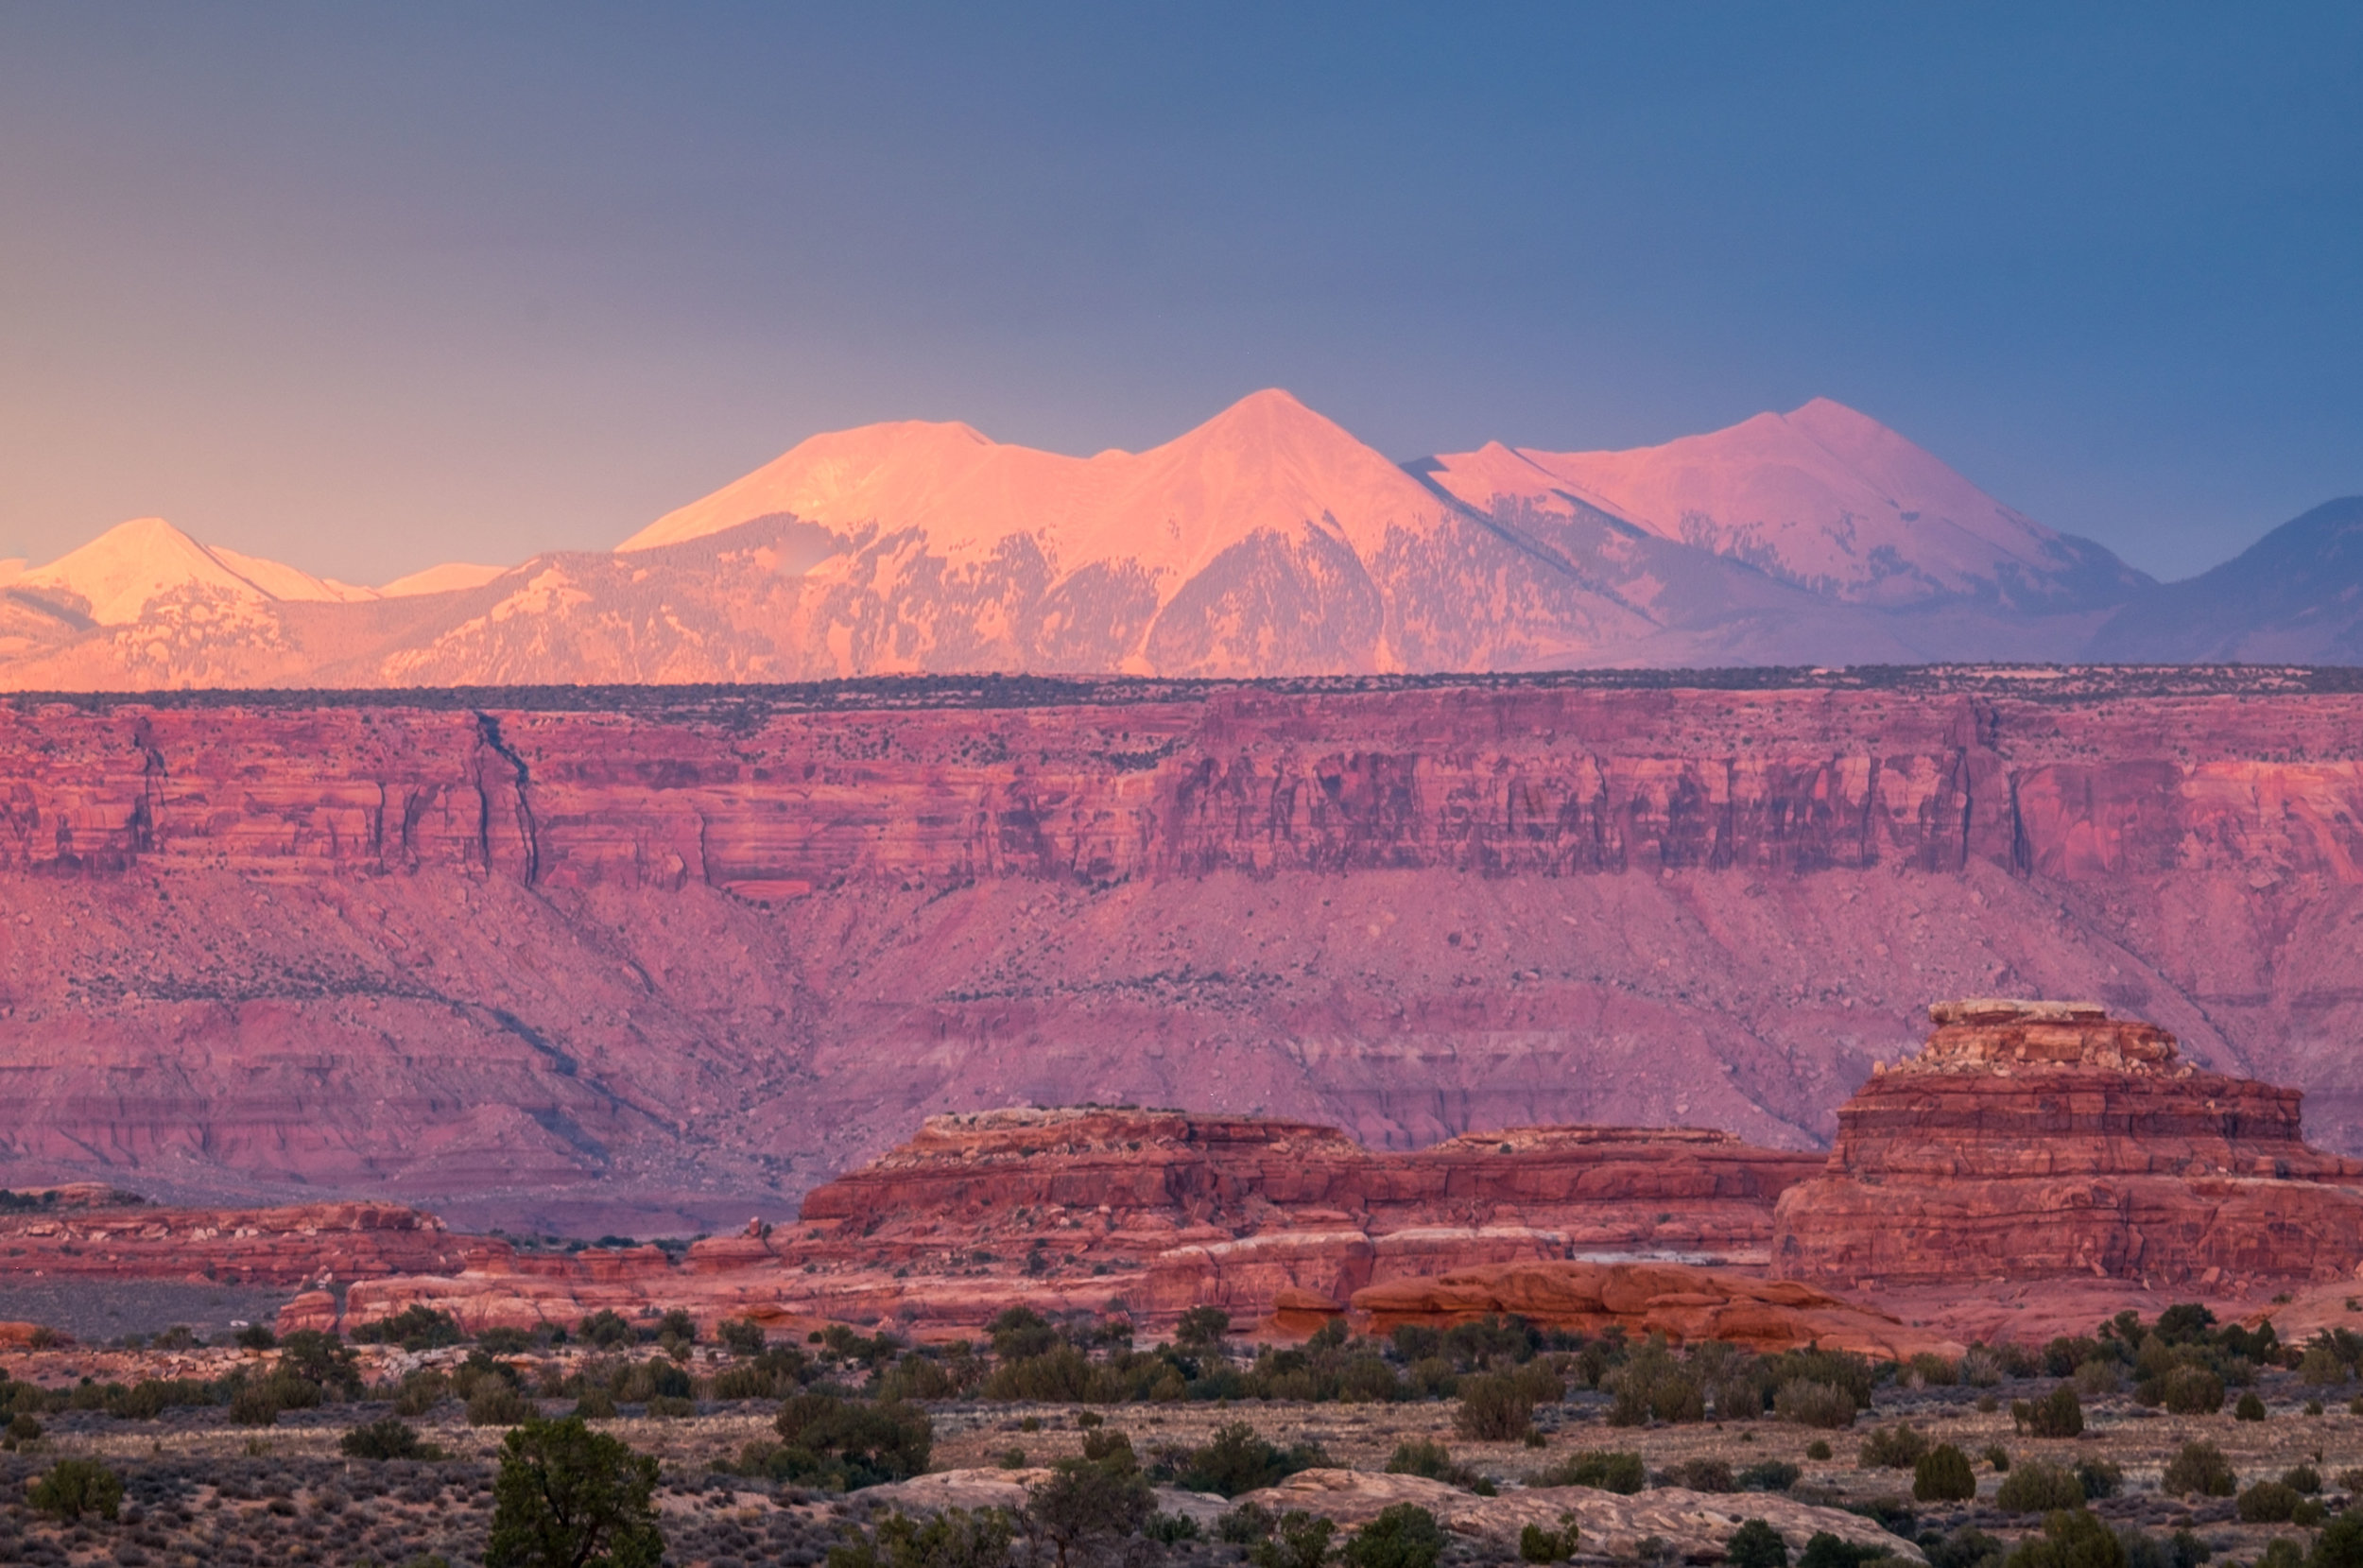 The La Sal Mountains rise behind the Canyonlands illuminated by the light of a richly colored sunset.